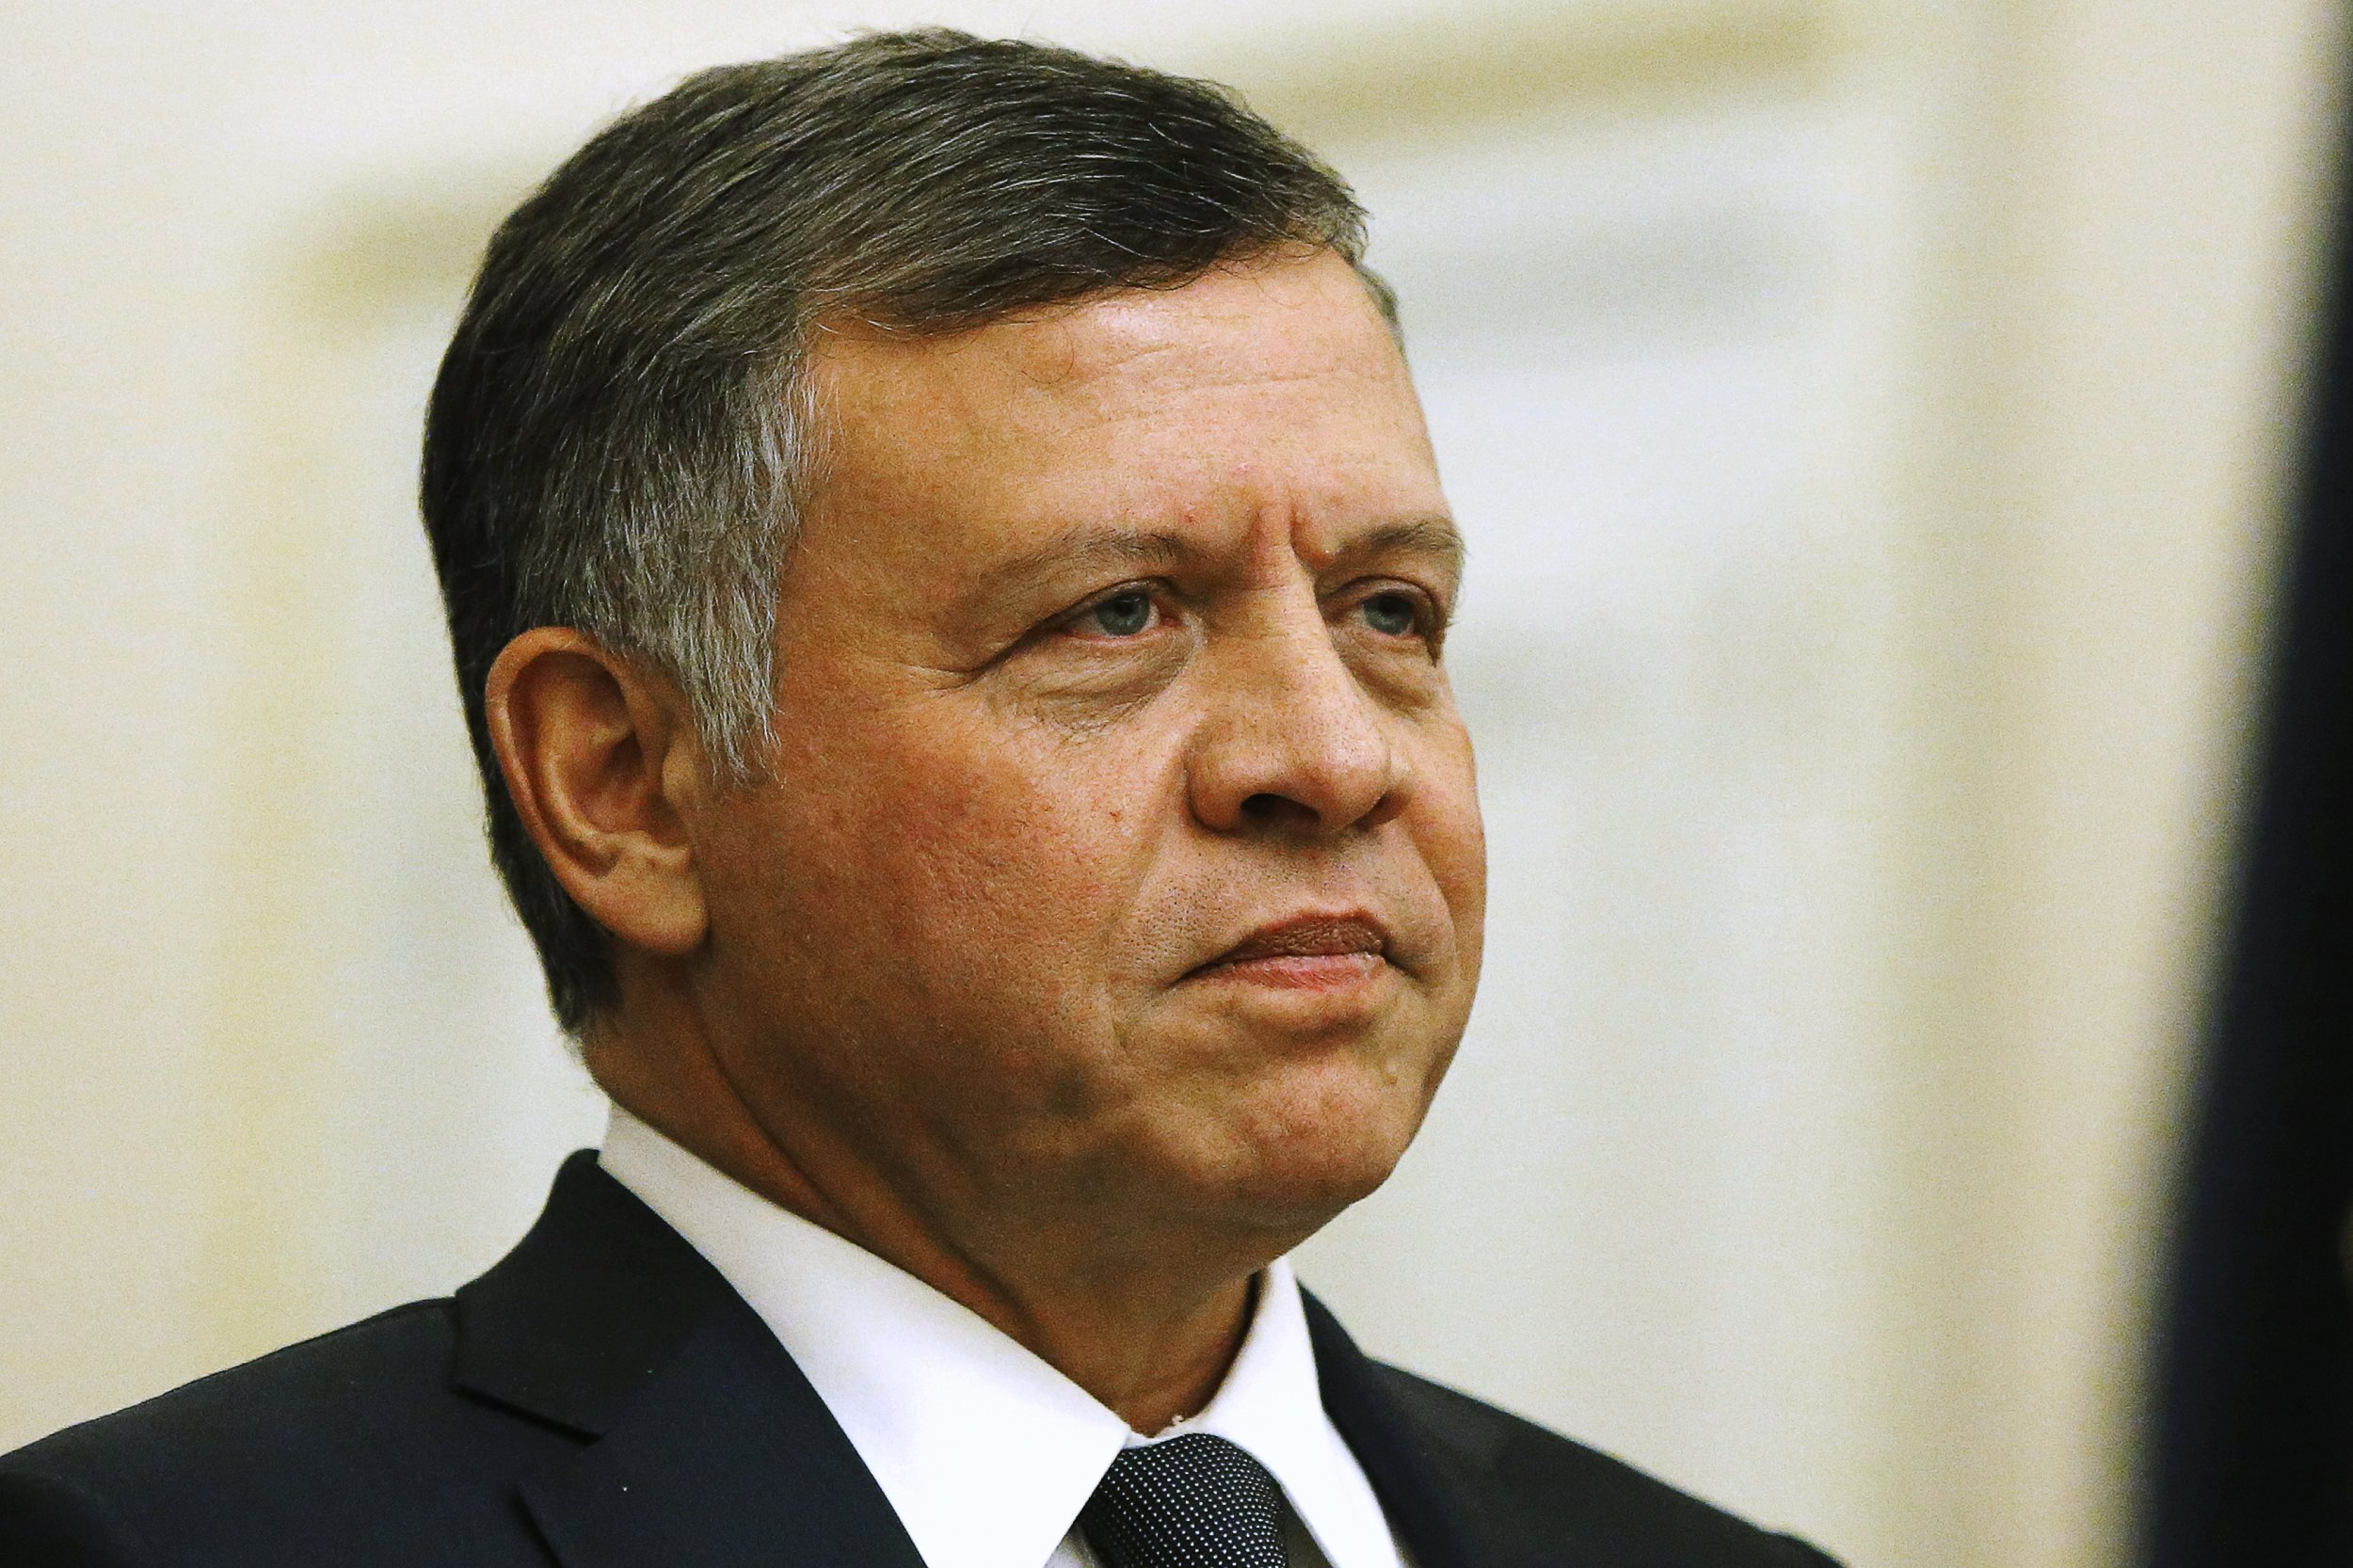 how tall is king abdullah